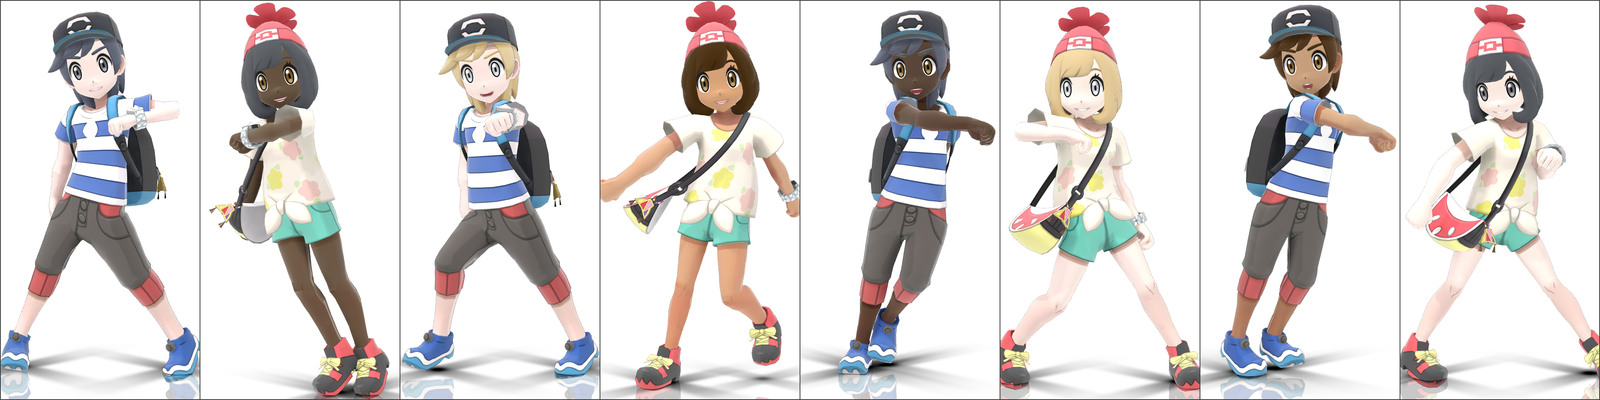 mmd some protagonist edits by go98 on deviantart